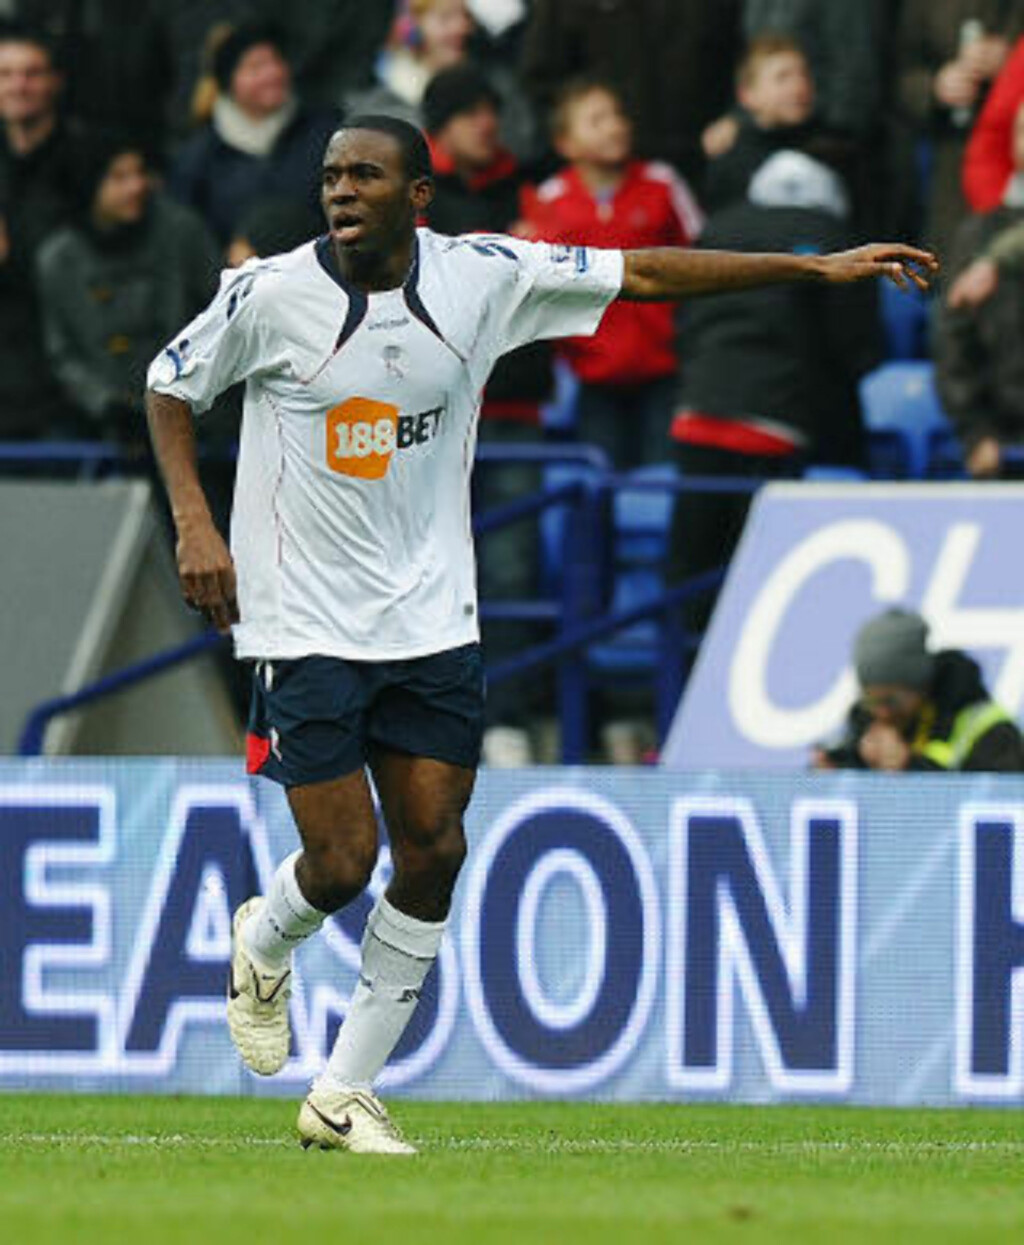 KOLLAPSET: Boltons Fabrice Muamba. Foto:  AFP PHOTO/PAUL ELLIS